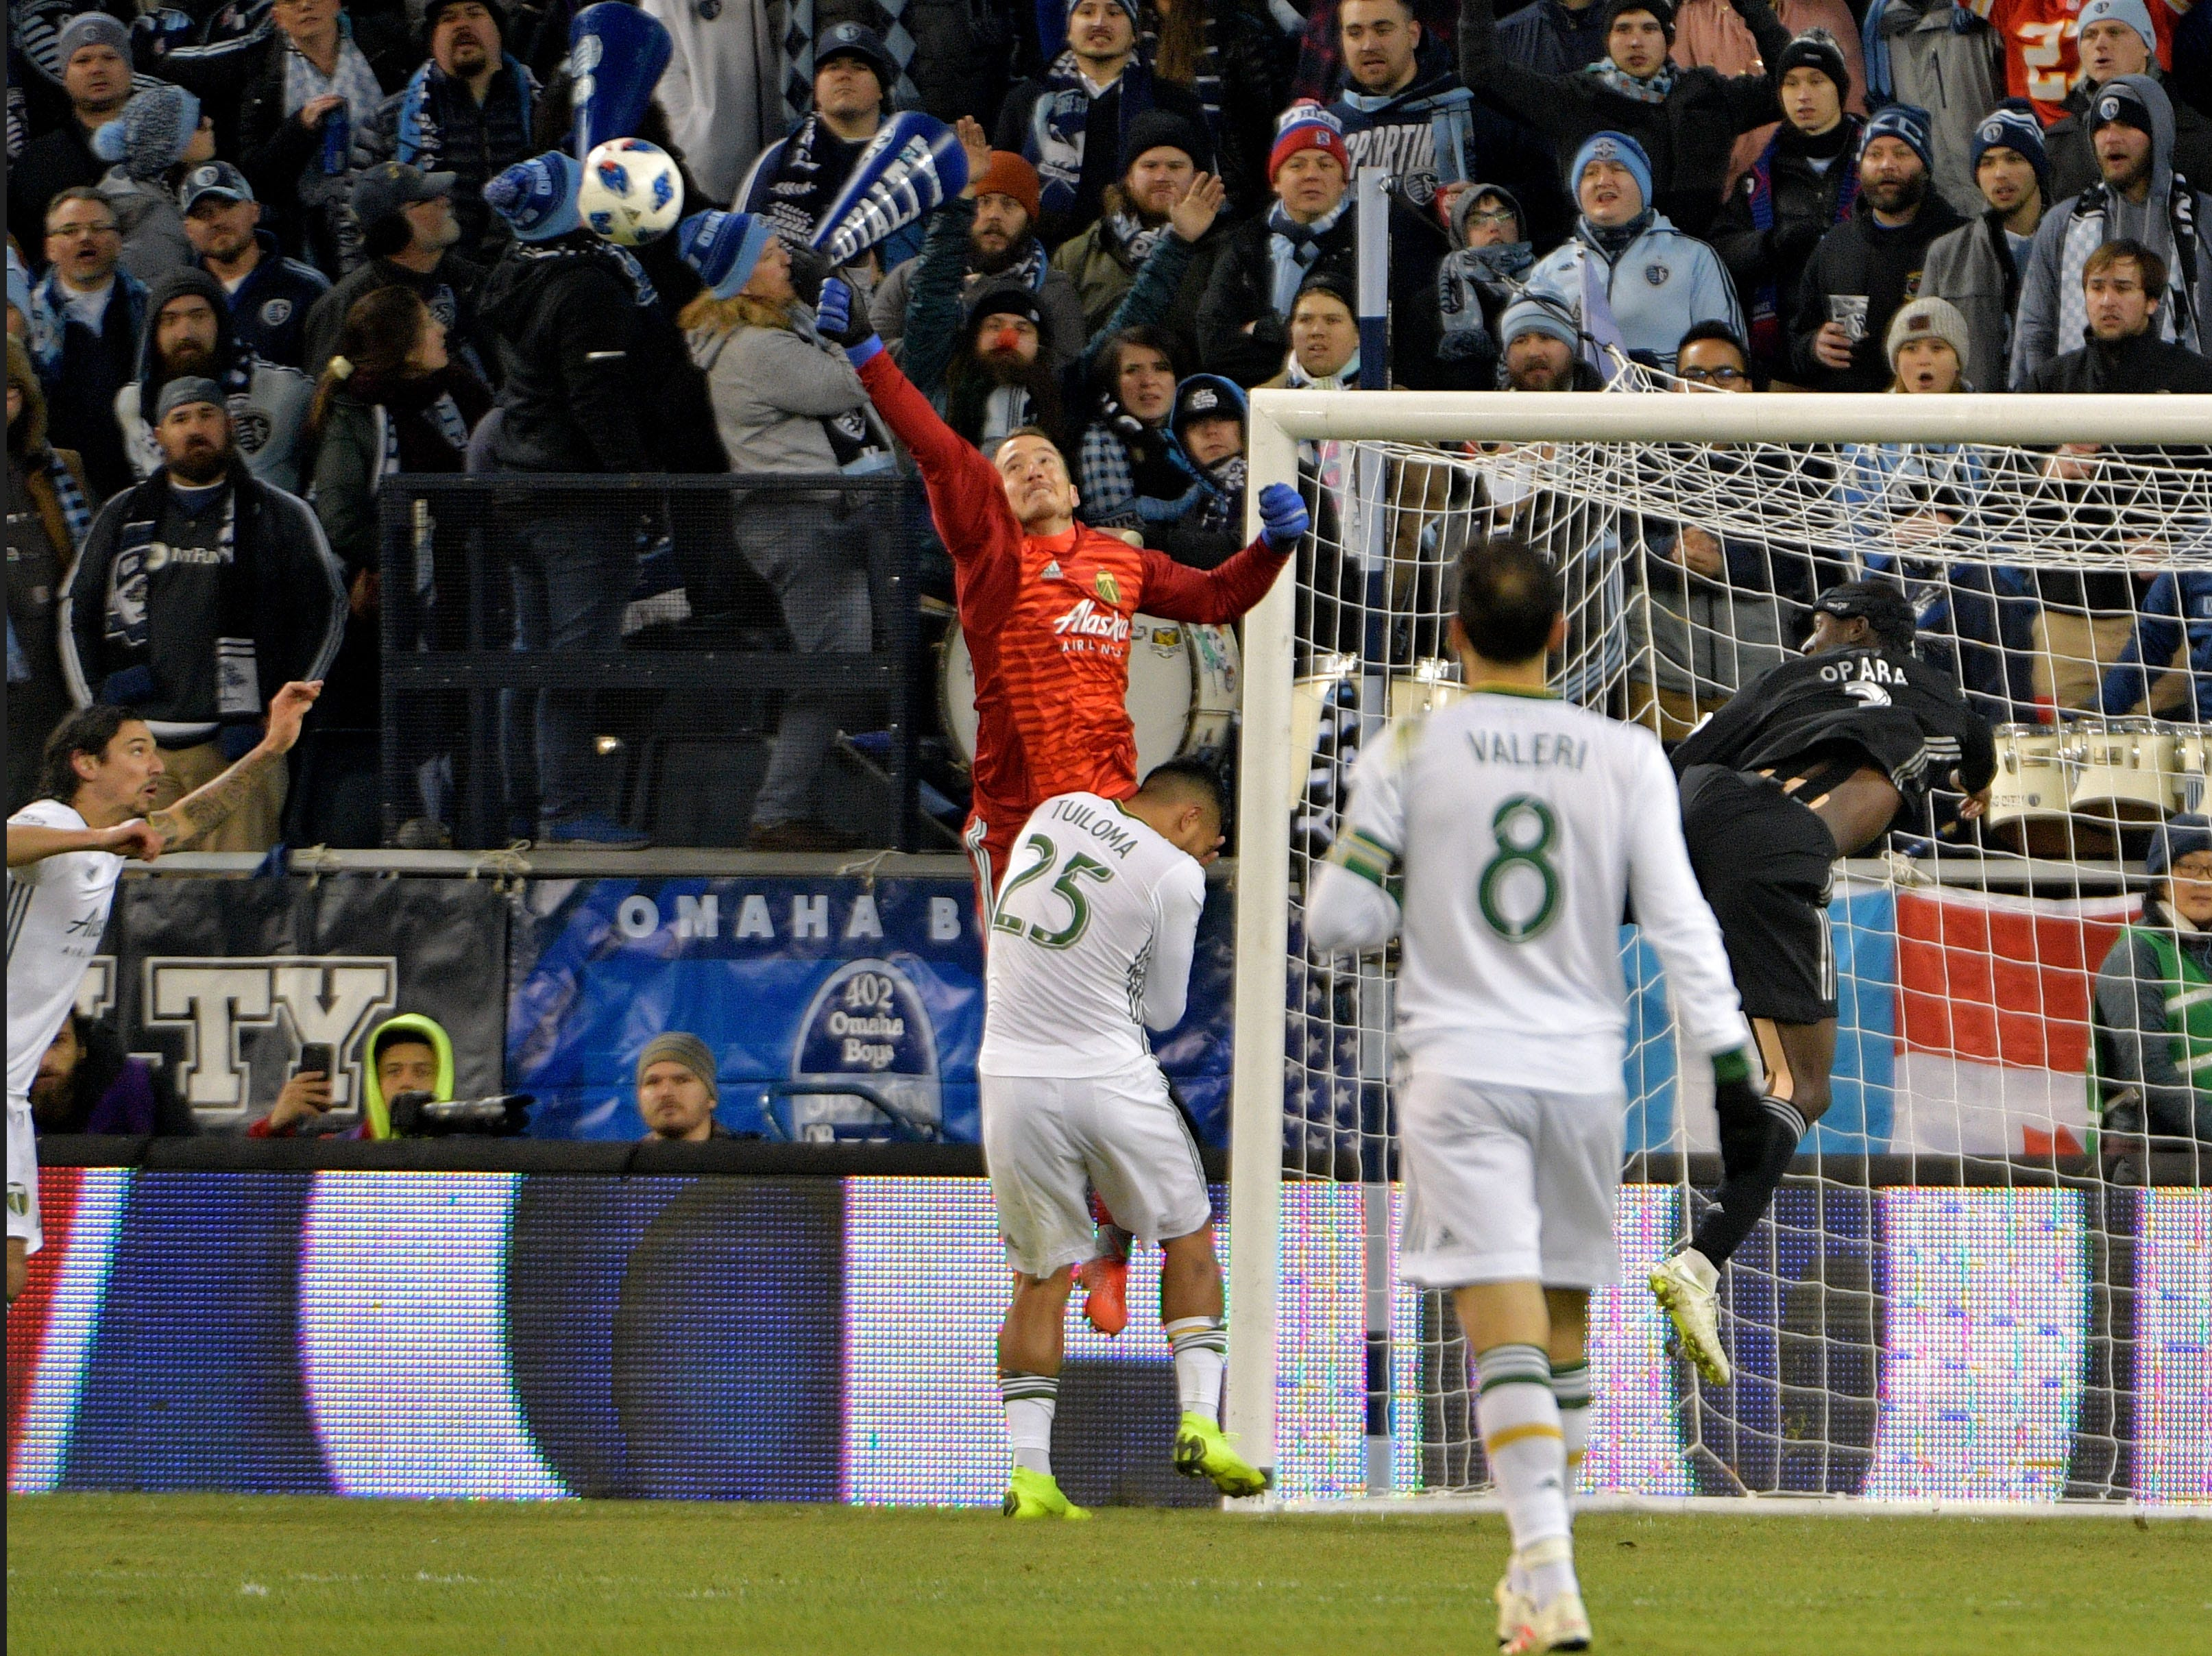 Nov 29, 2018; Kansas City, KS, USA; Portland Timbers goalkeeper Jeff Attinella (1) punches out a shot on goal from Sporting Kansas City defender Ike Opara (3) in the second leg of the MLS Western Conference Championship at Children's Mercy Park. Mandatory Credit: Denny Medley-USA TODAY Sports